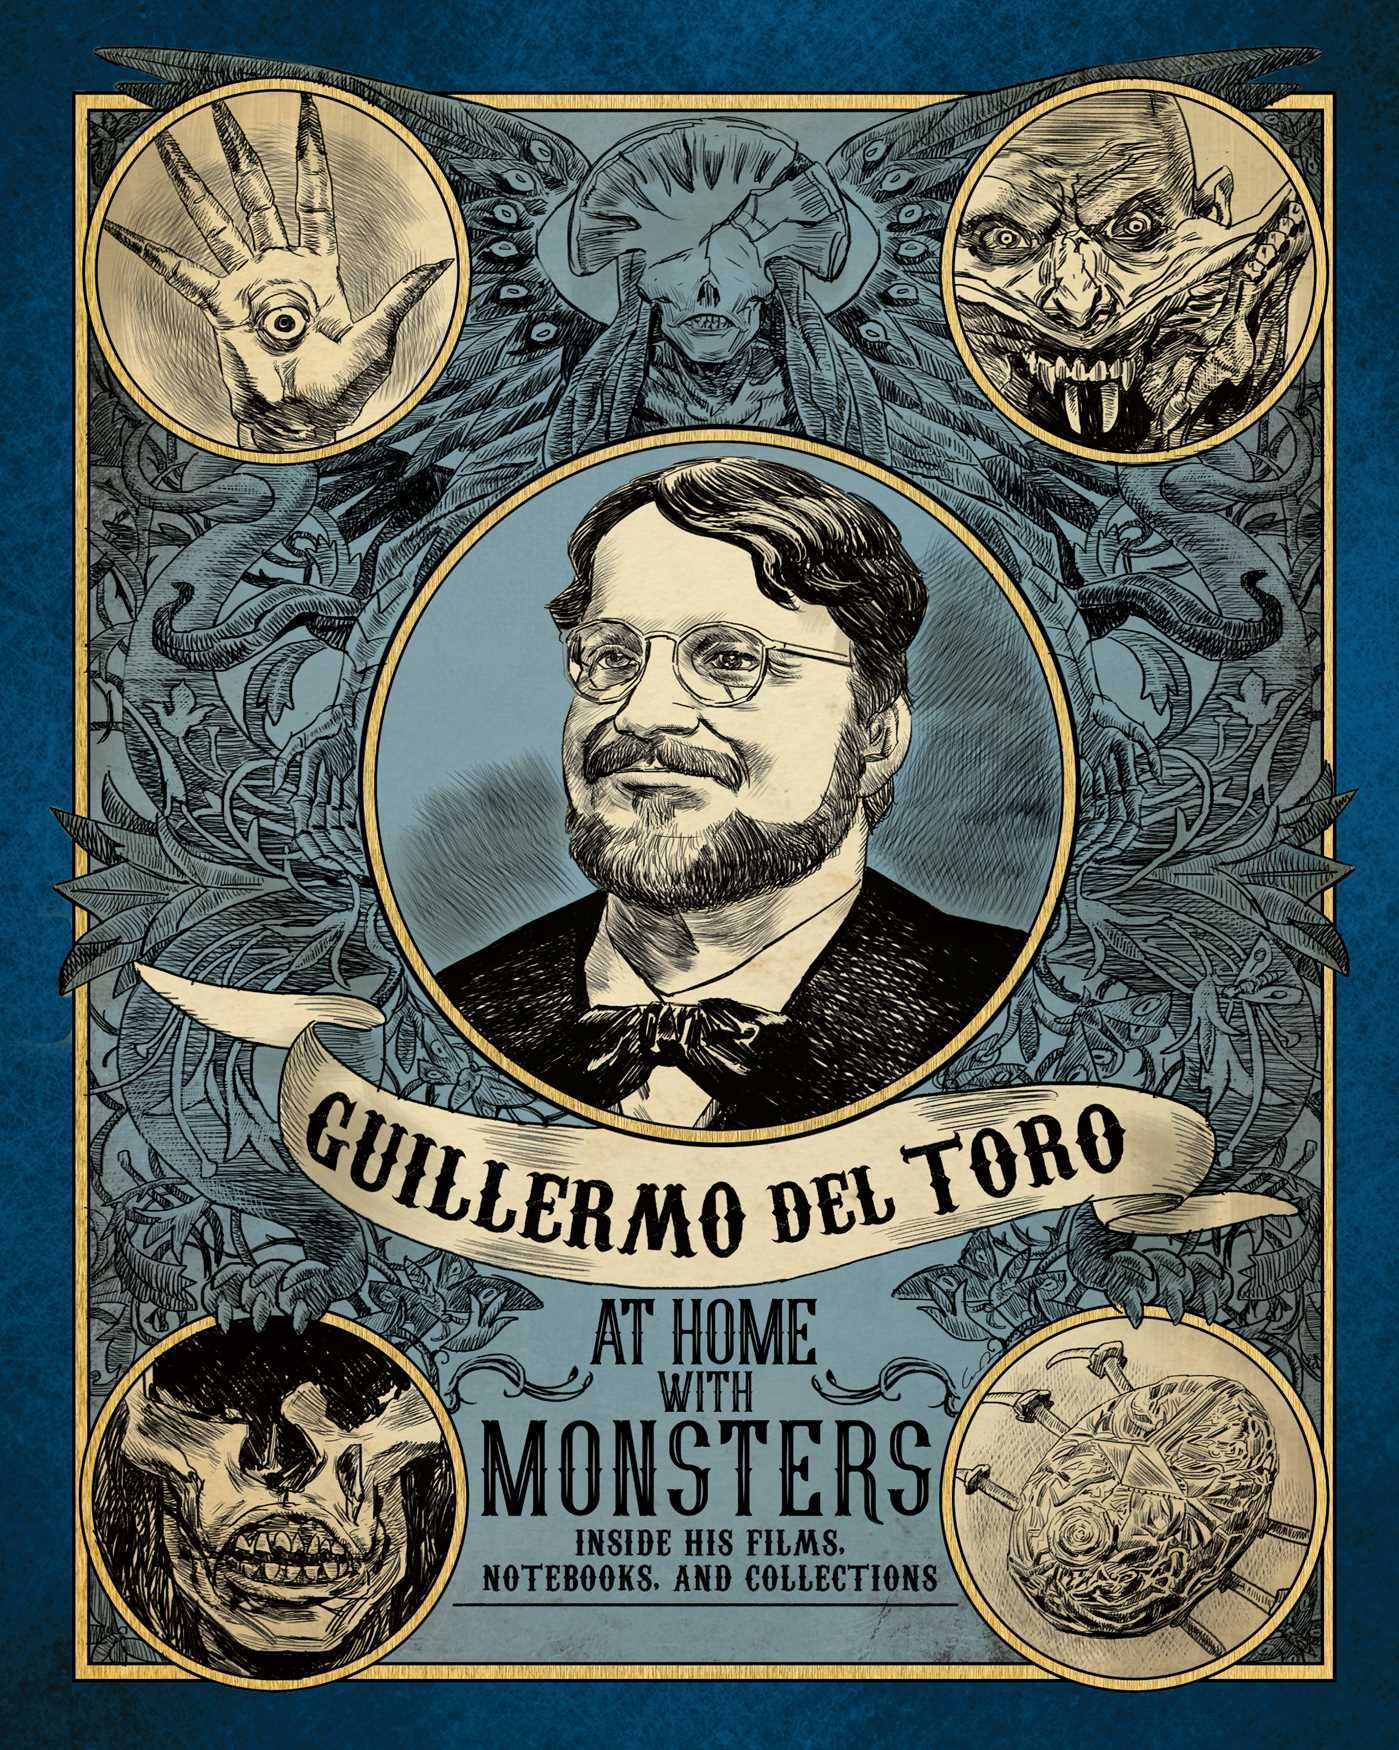 Guillermo del toro at home with monsters 9781608878604 hr